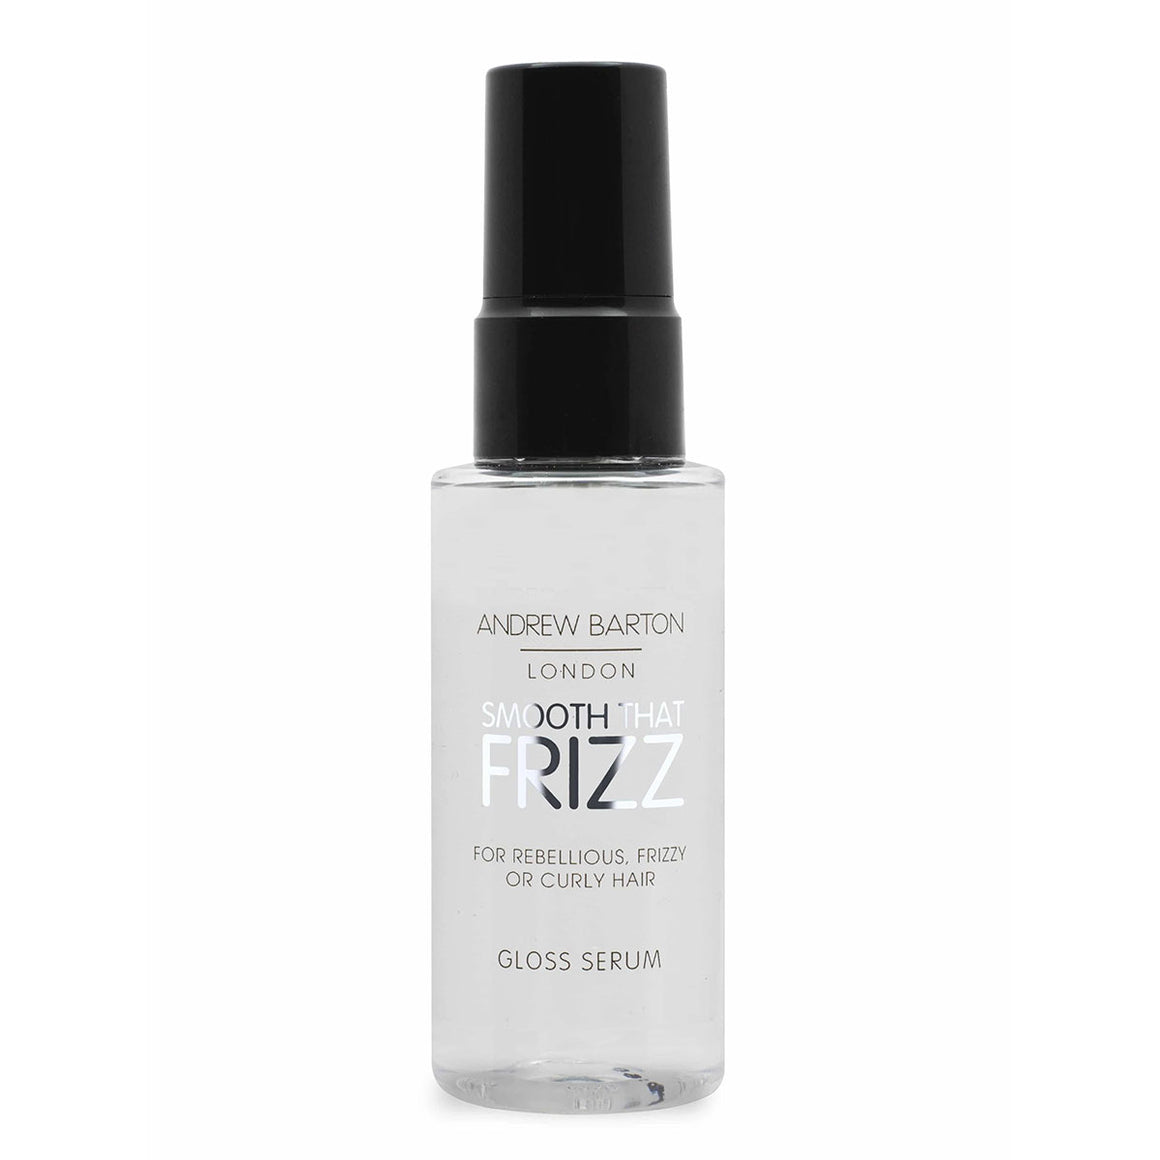 Andrew Barton Smooth That Frizz Gloss Serum at BD Budget Beauty (BBB)